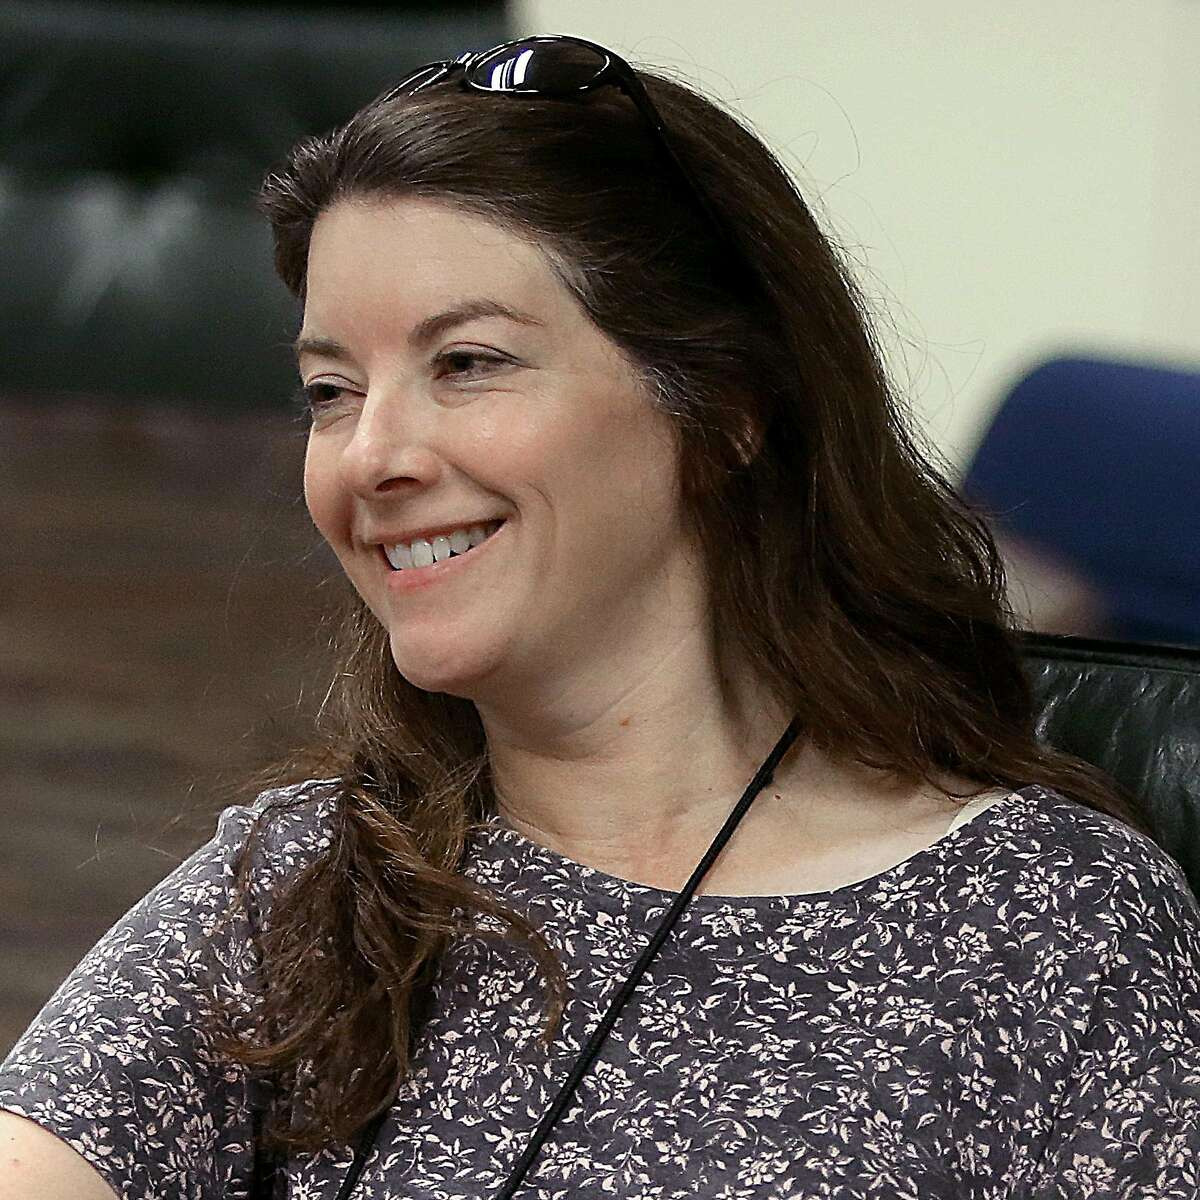 San Francisco Chronicle A's beat writer Susan Slusser has a meeting at a Chronicle conference room in San Francisco, Calif., on Tuesday, July 14, 2015.